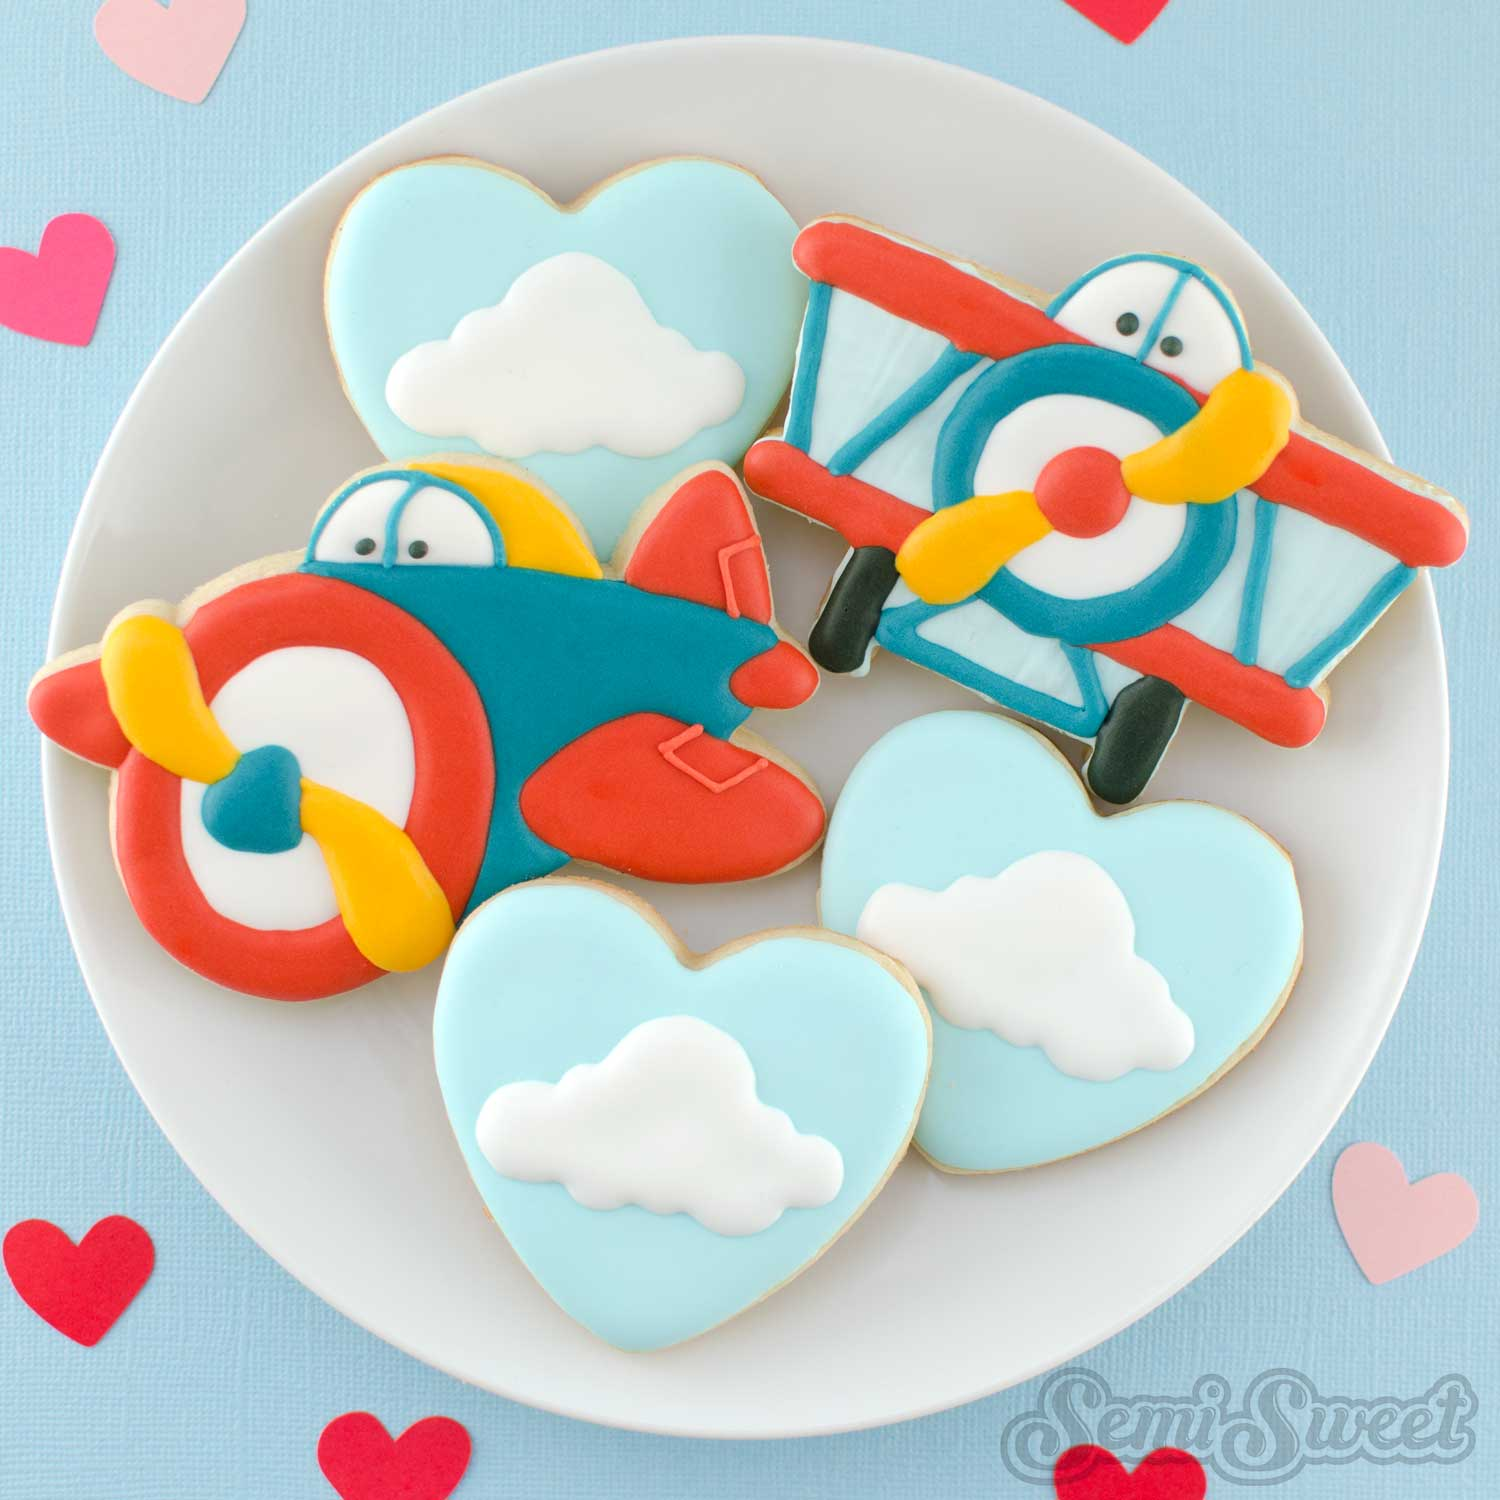 How to Make Cute Airplane Cookies